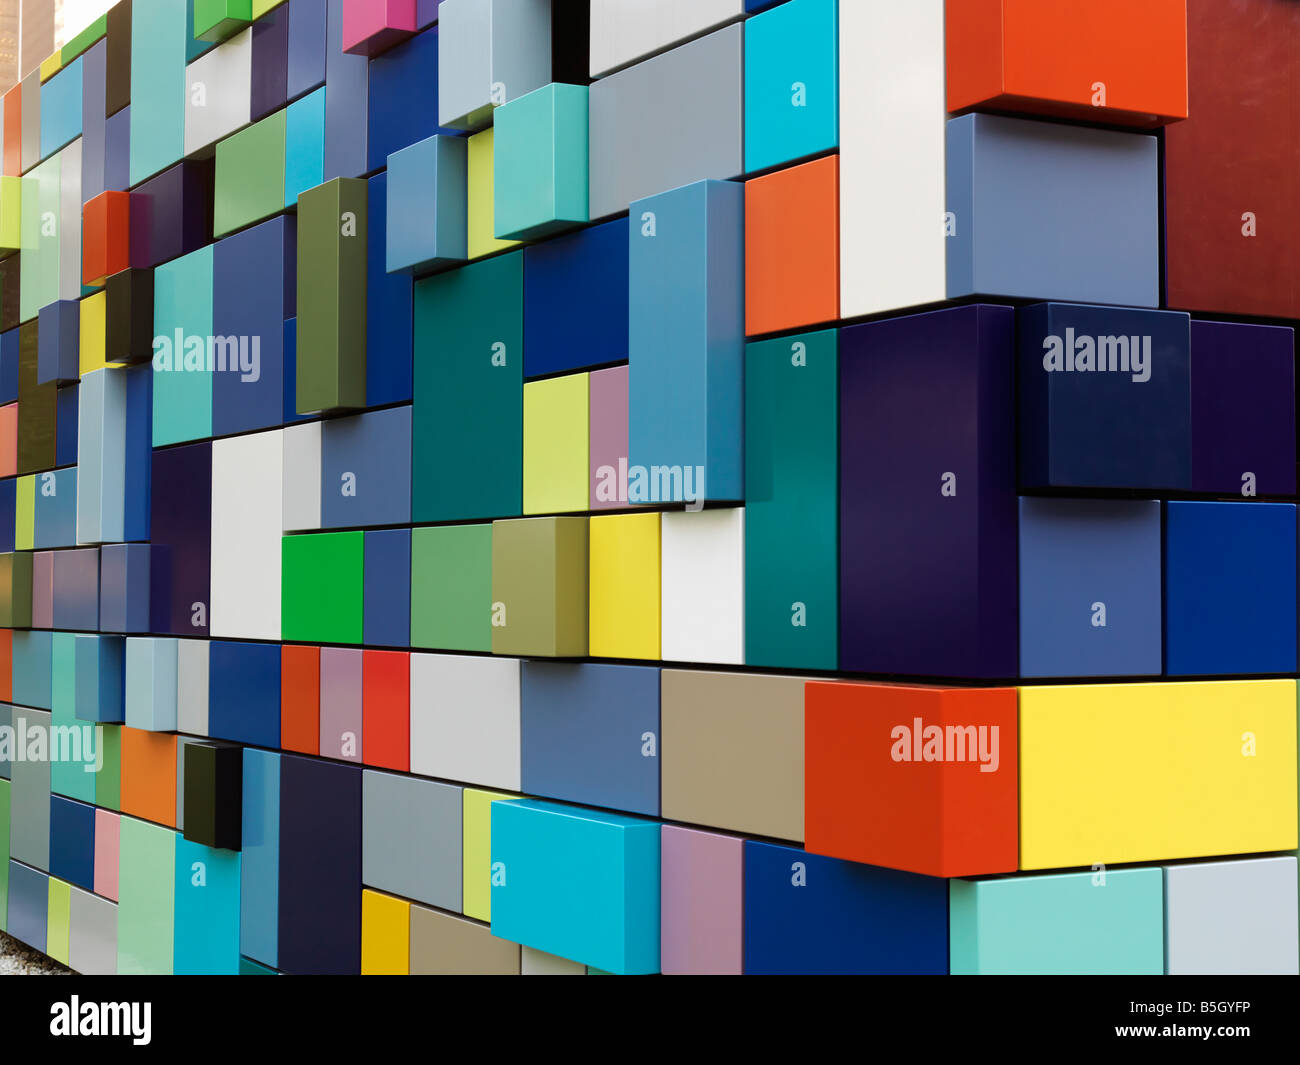 Color Sample Stock Photos & Color Sample Stock Images - Alamy